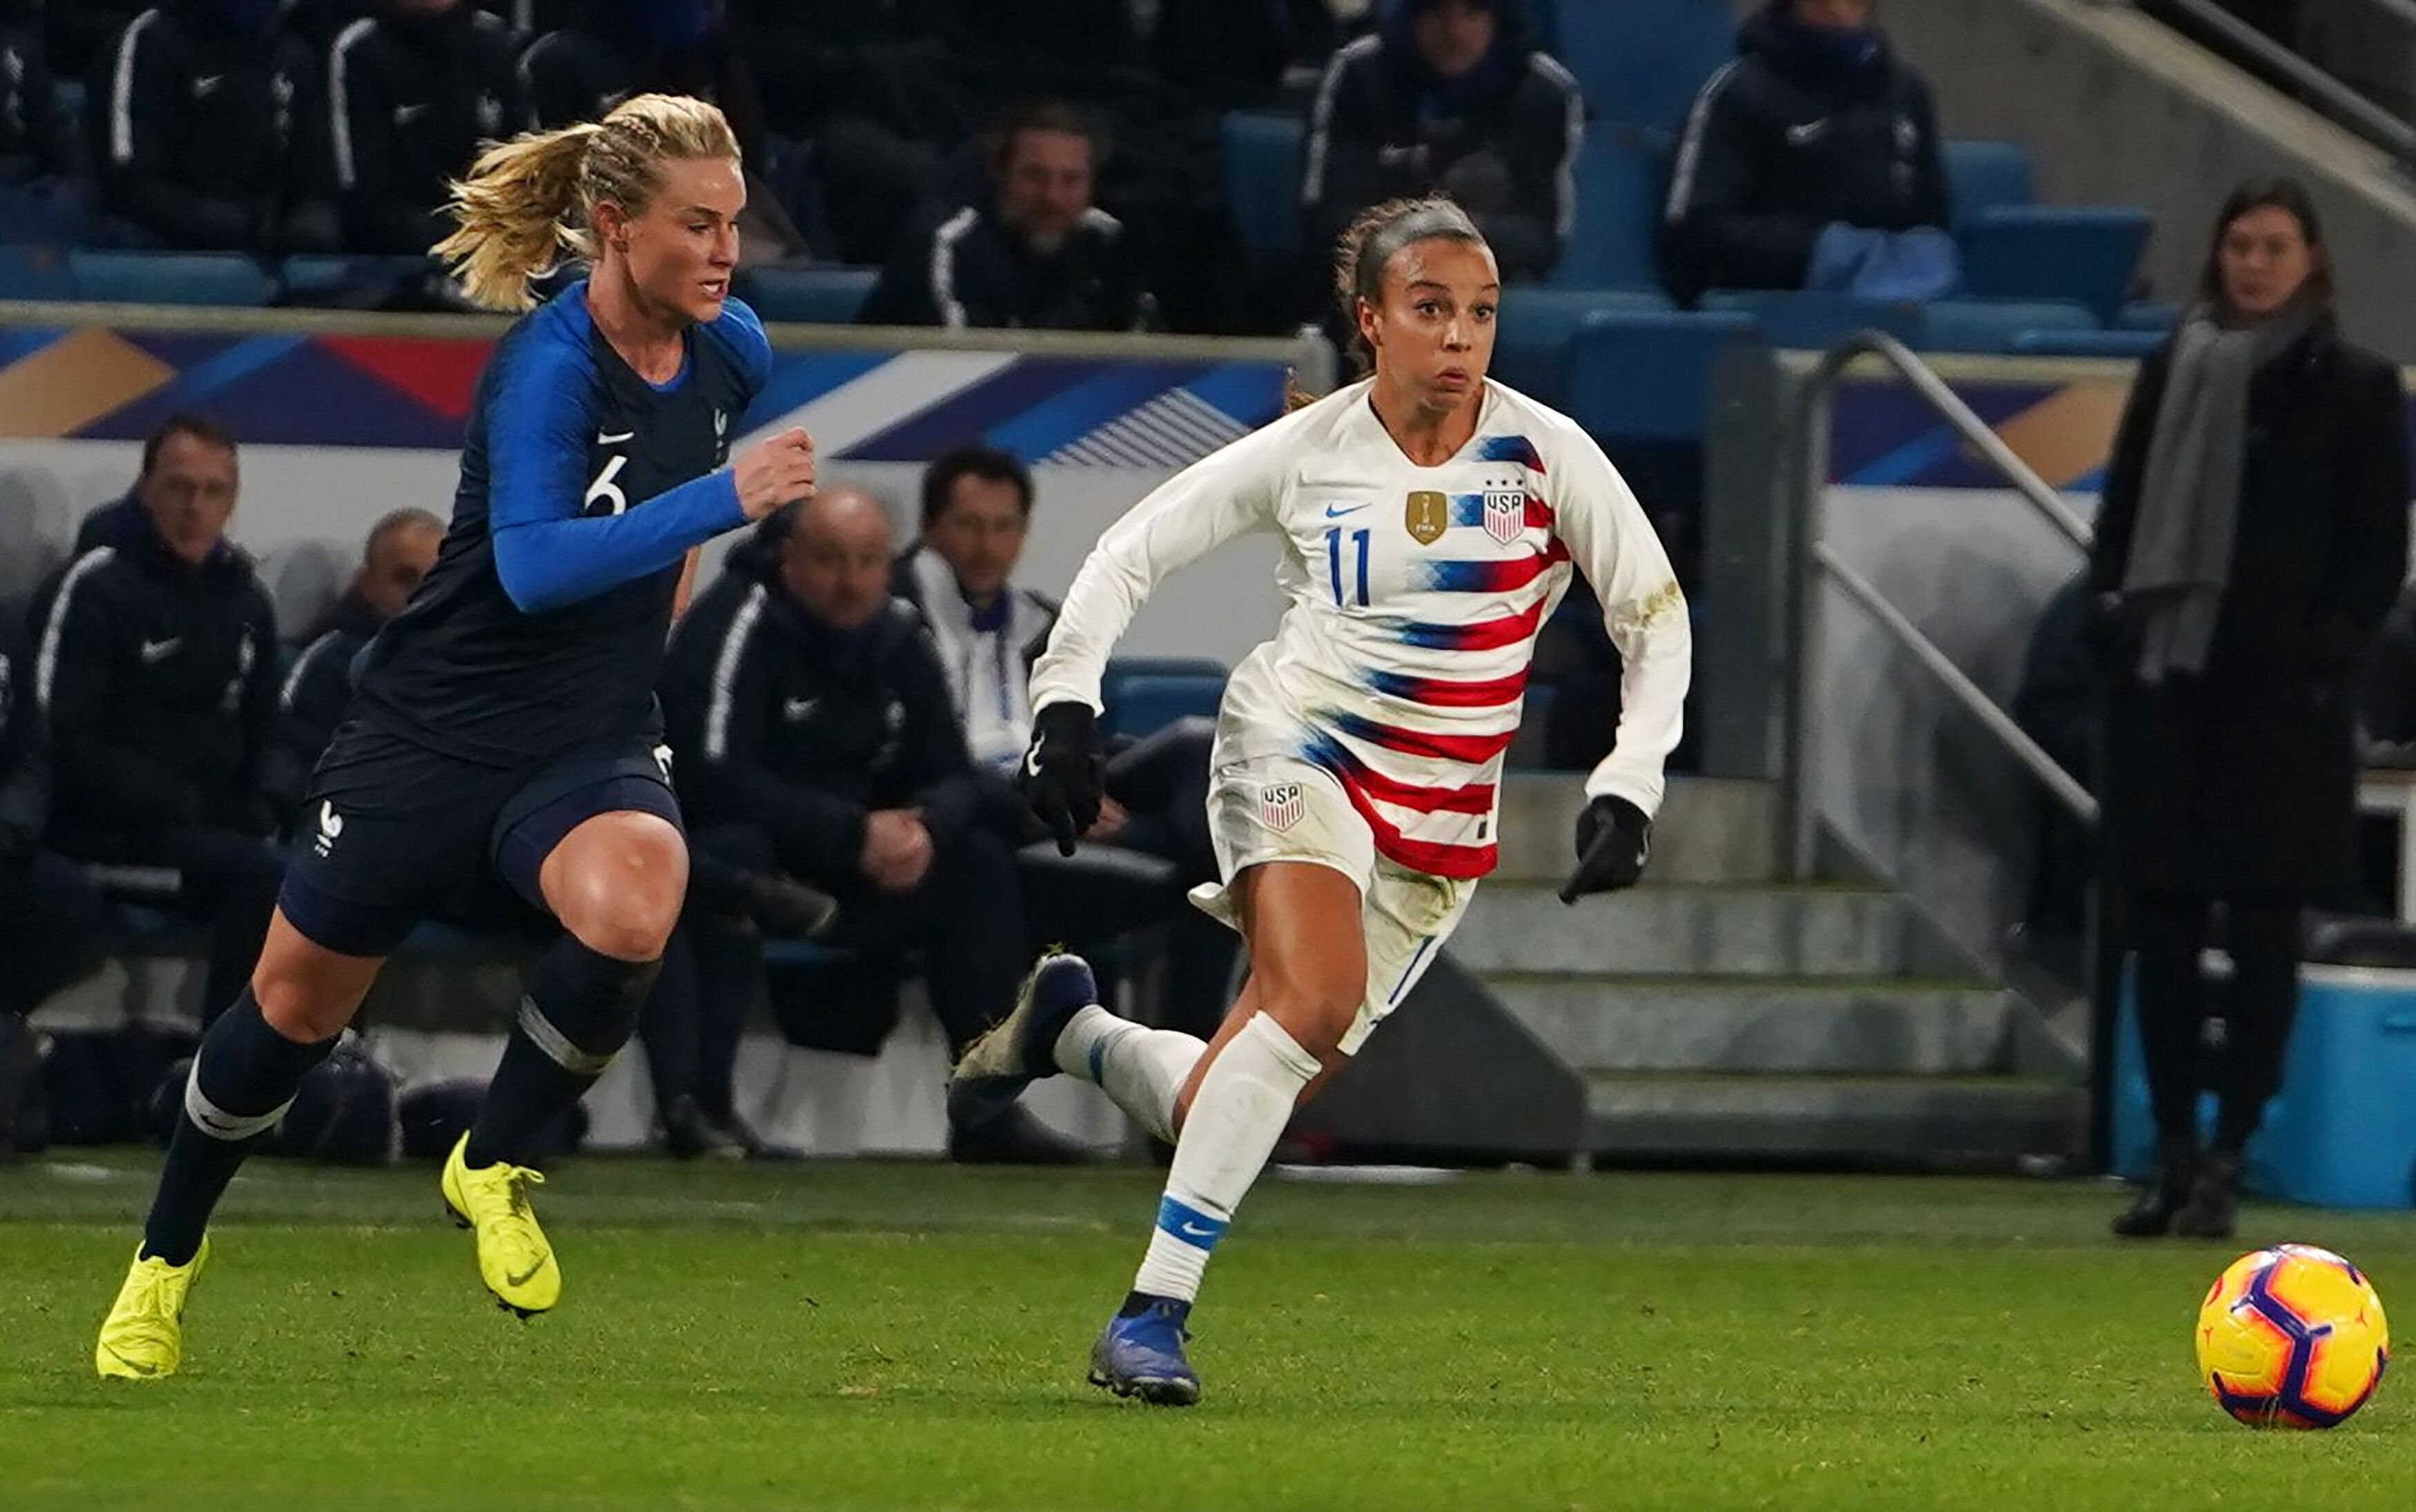 Amandine Henry (6) and France will chase the country's first Women's World Cup title, a victory that would make France the re